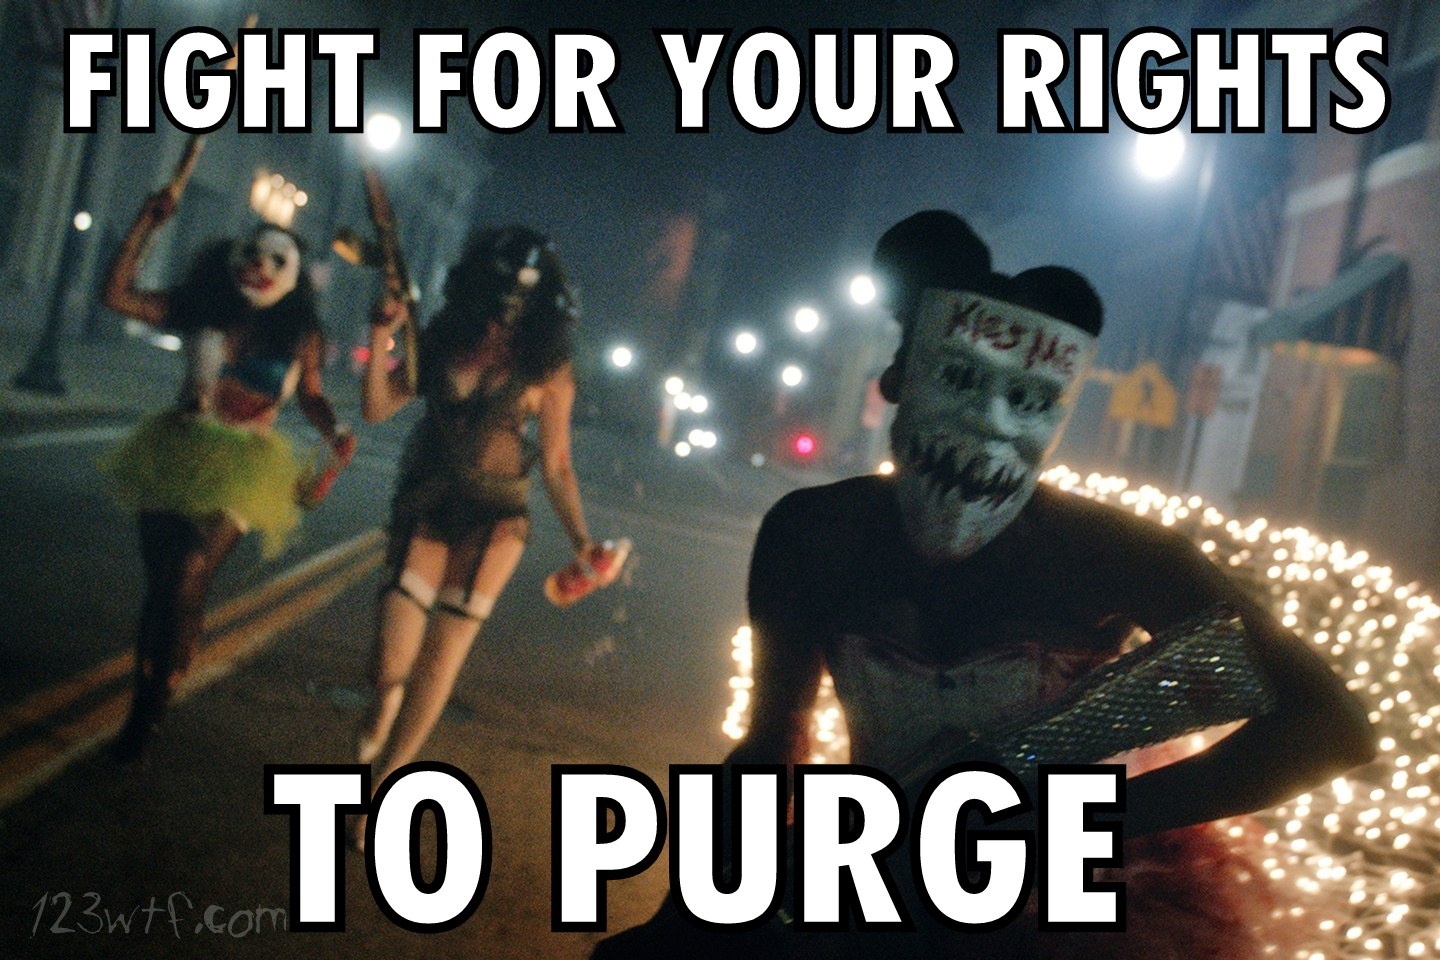 purge election year 37 meme fight for your rights to purge 123wtf watch the film saint pauly wtf the purge election year (2016) 1,2,3 wtf!? (watch the film),Purge Meme